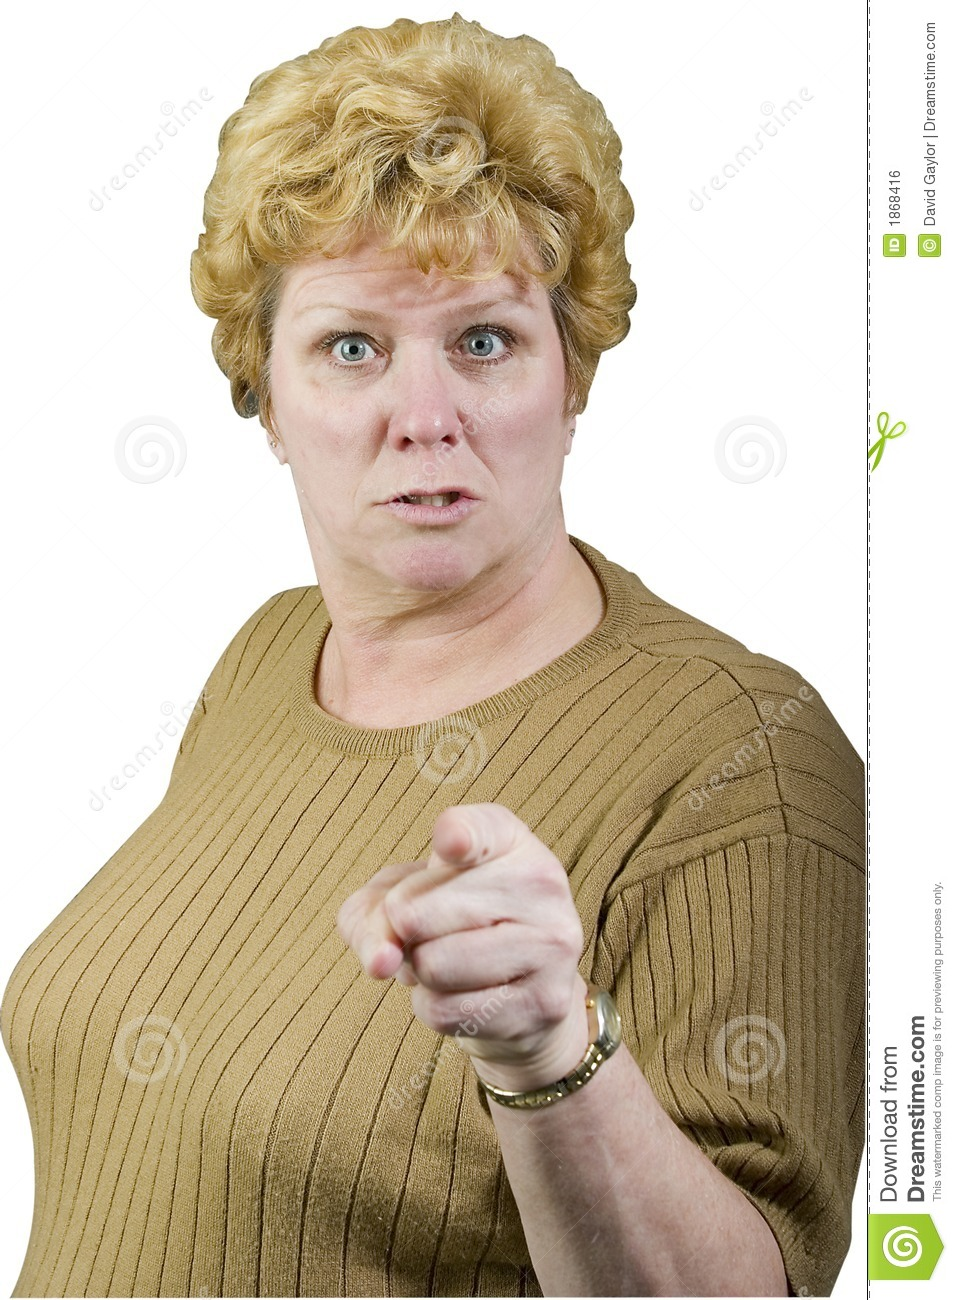 Older Woman (50+) Angry That She's Invisible To Men